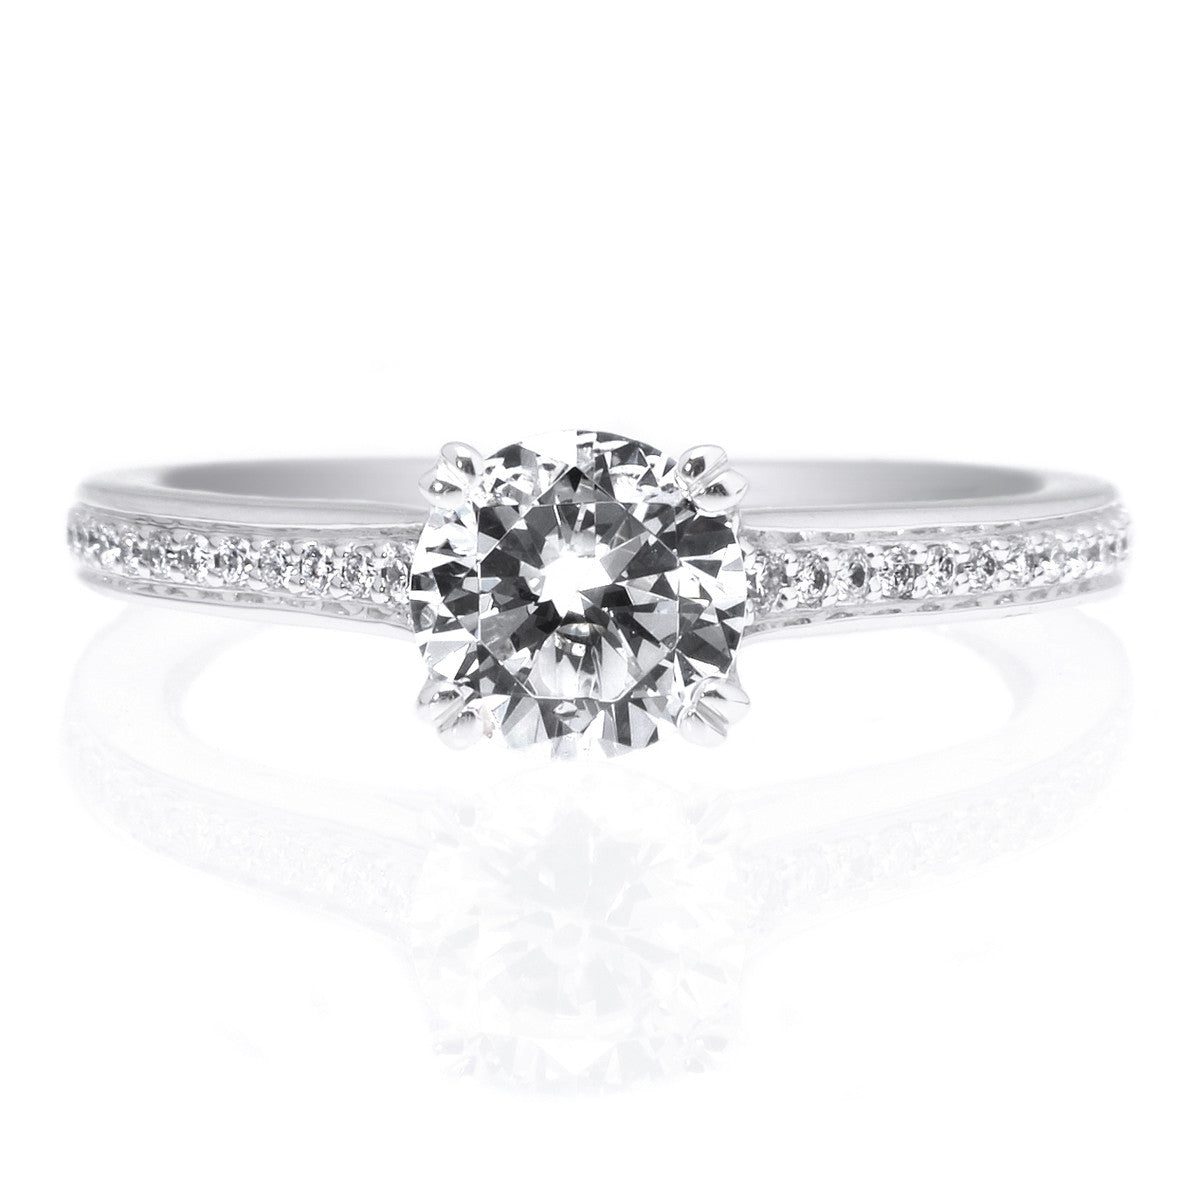 18K White Gold Micro-Pave Engagement Ring Setting with Surprise Diamonds